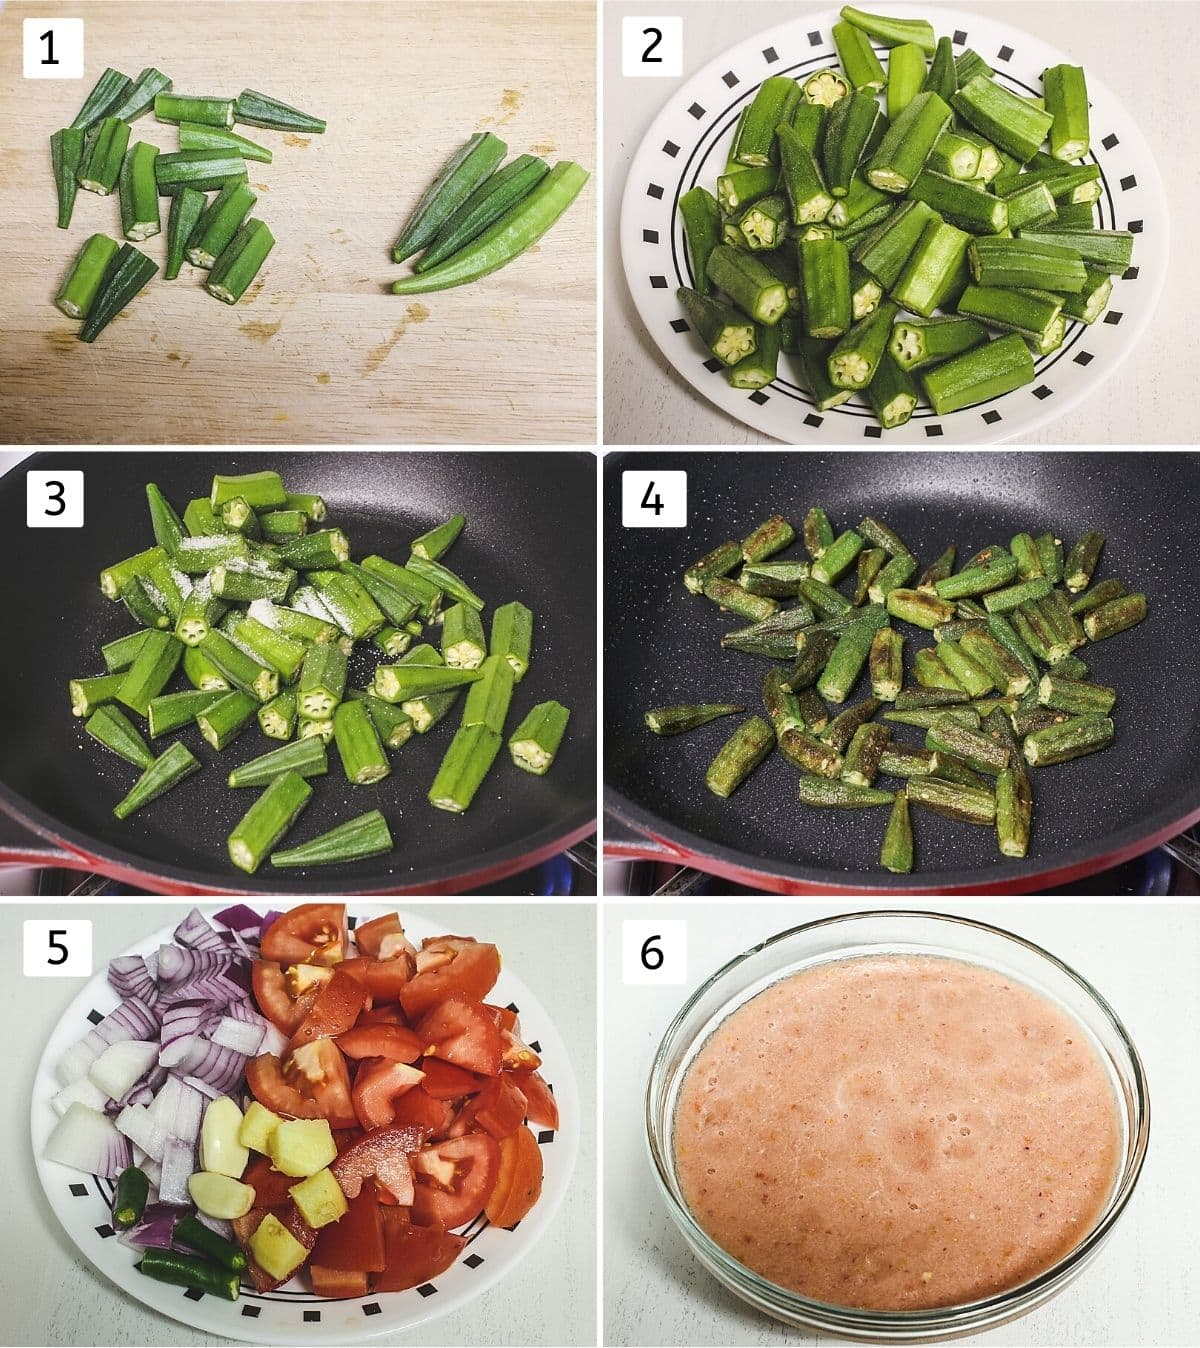 Collage of 6 steps showing cutting okra, cut okra in a plate, cooking okra, gravy ingredients in plate, ground into paste.